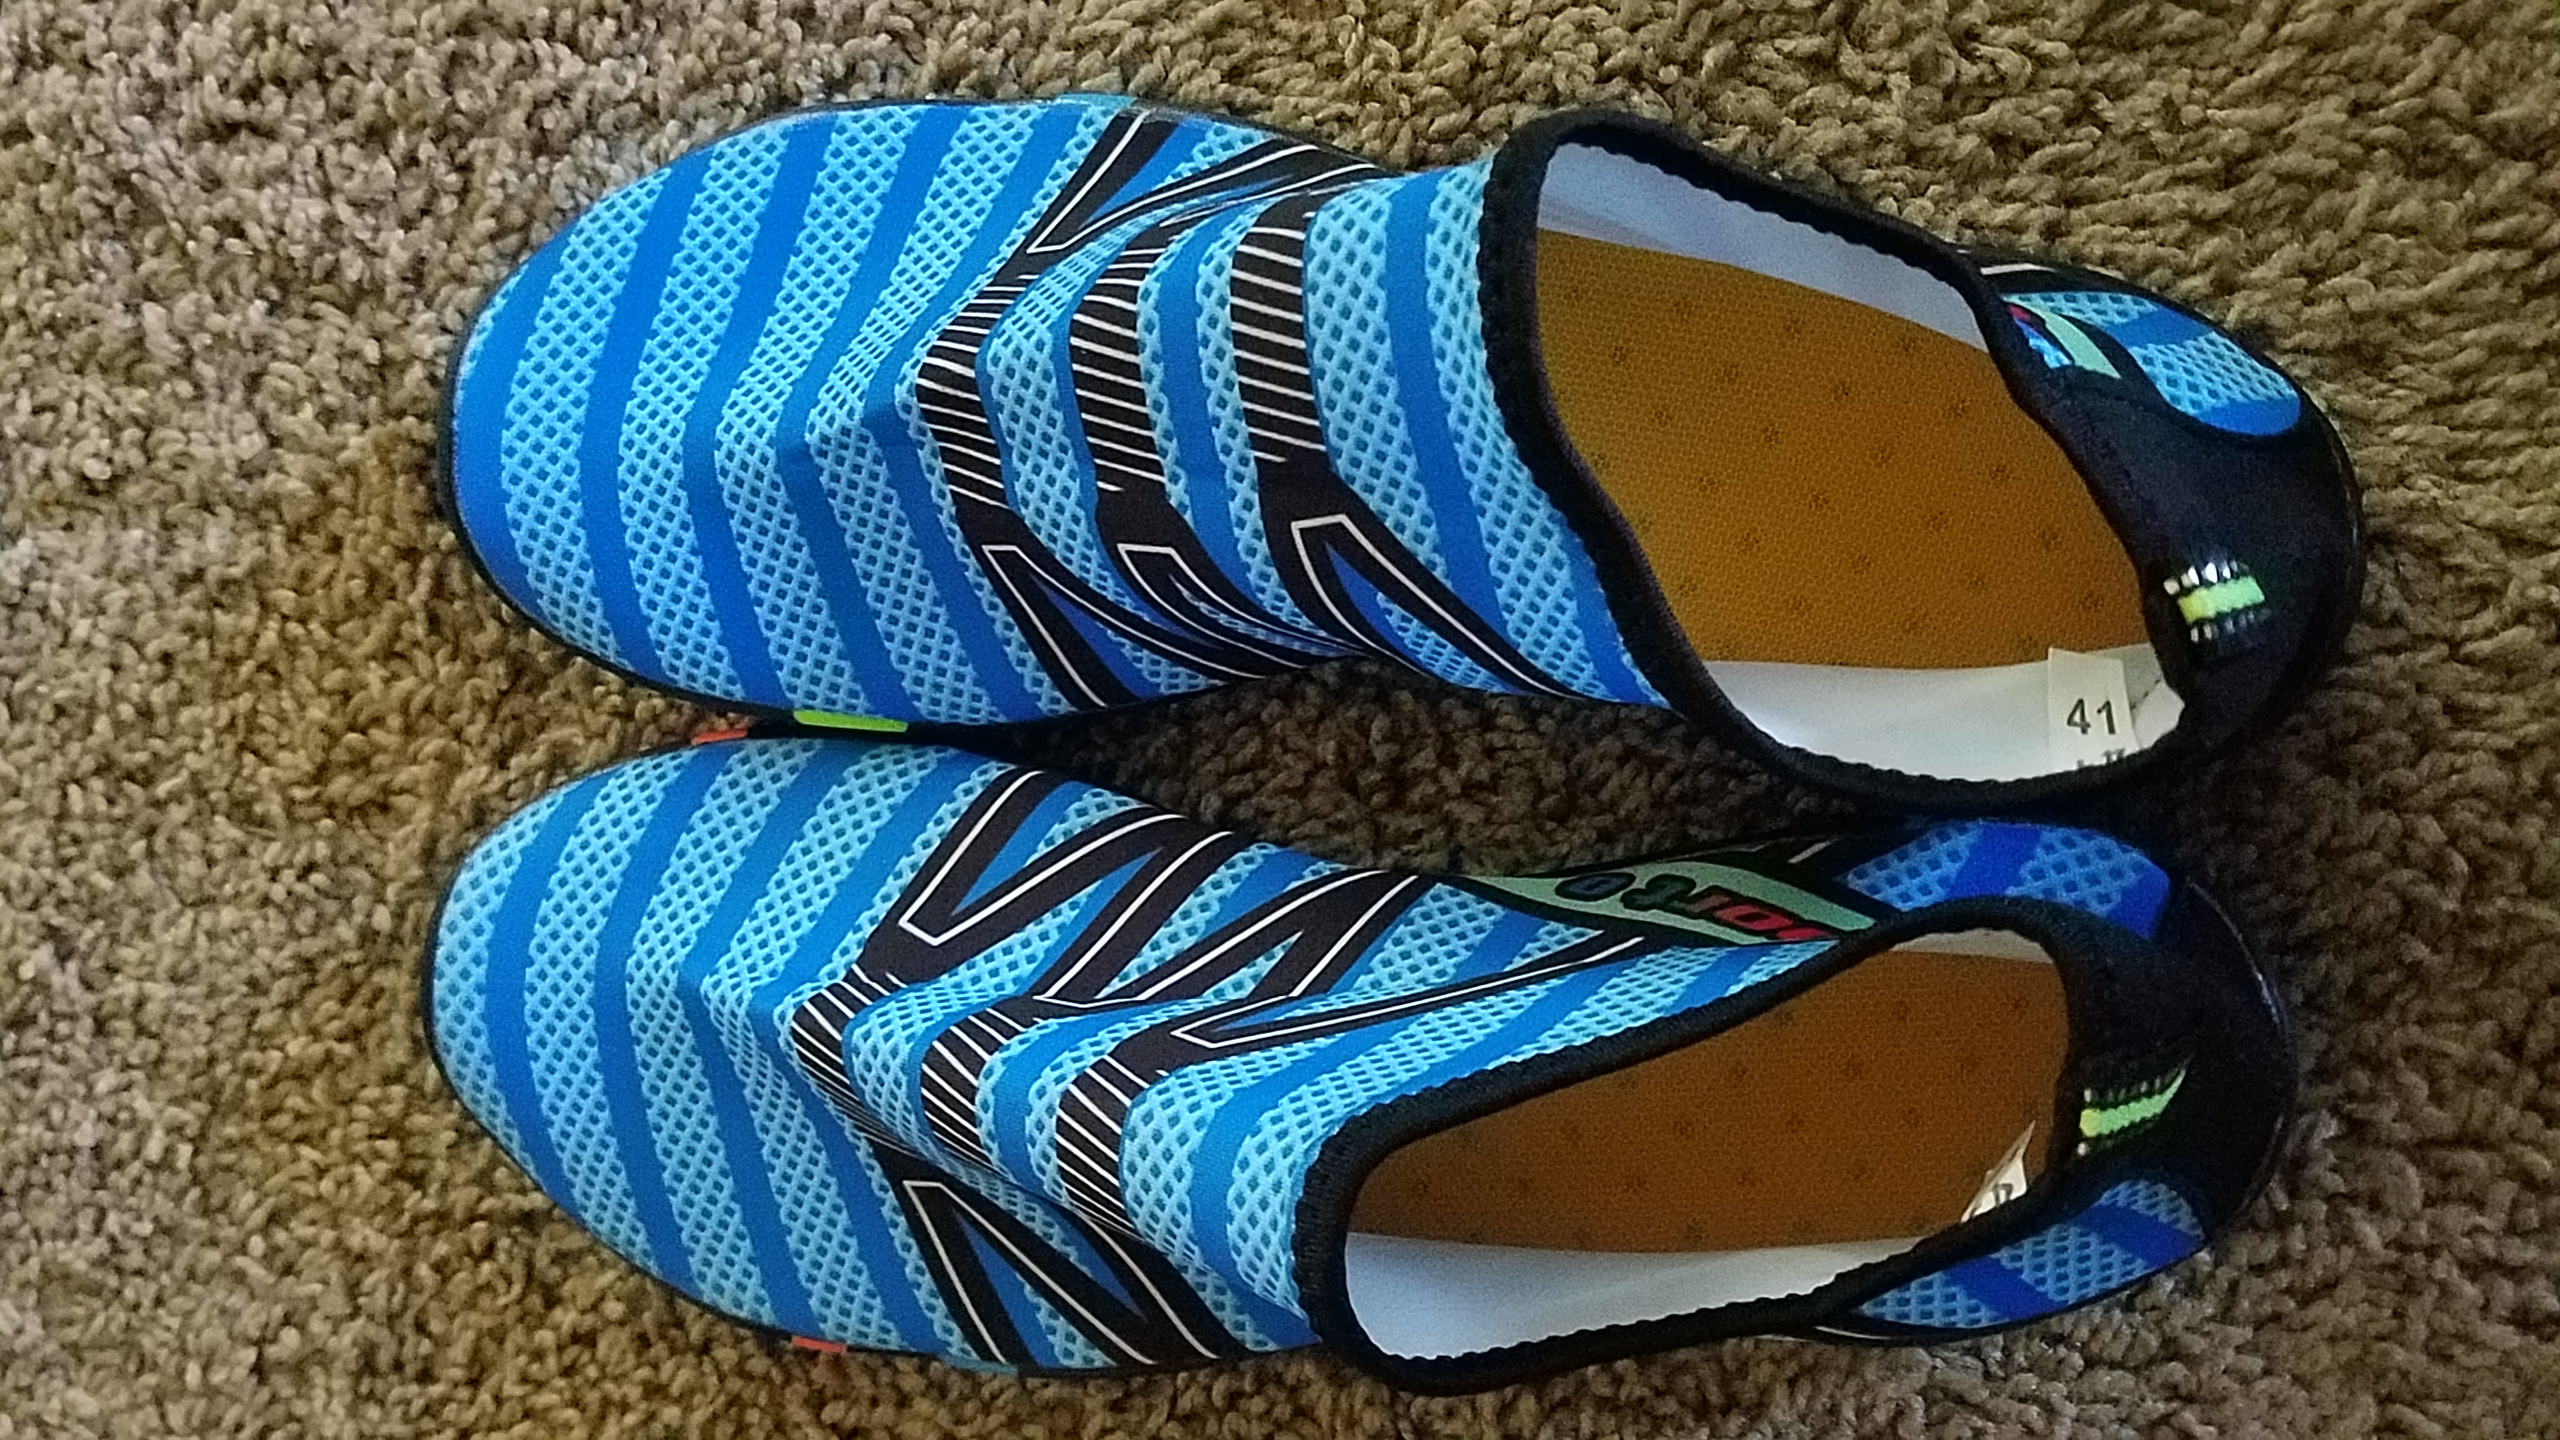 """Very light and comfortable, but a little big. Reminds me of the """"Kung Fu"""" sandals I used to wear 30+ years ago."""